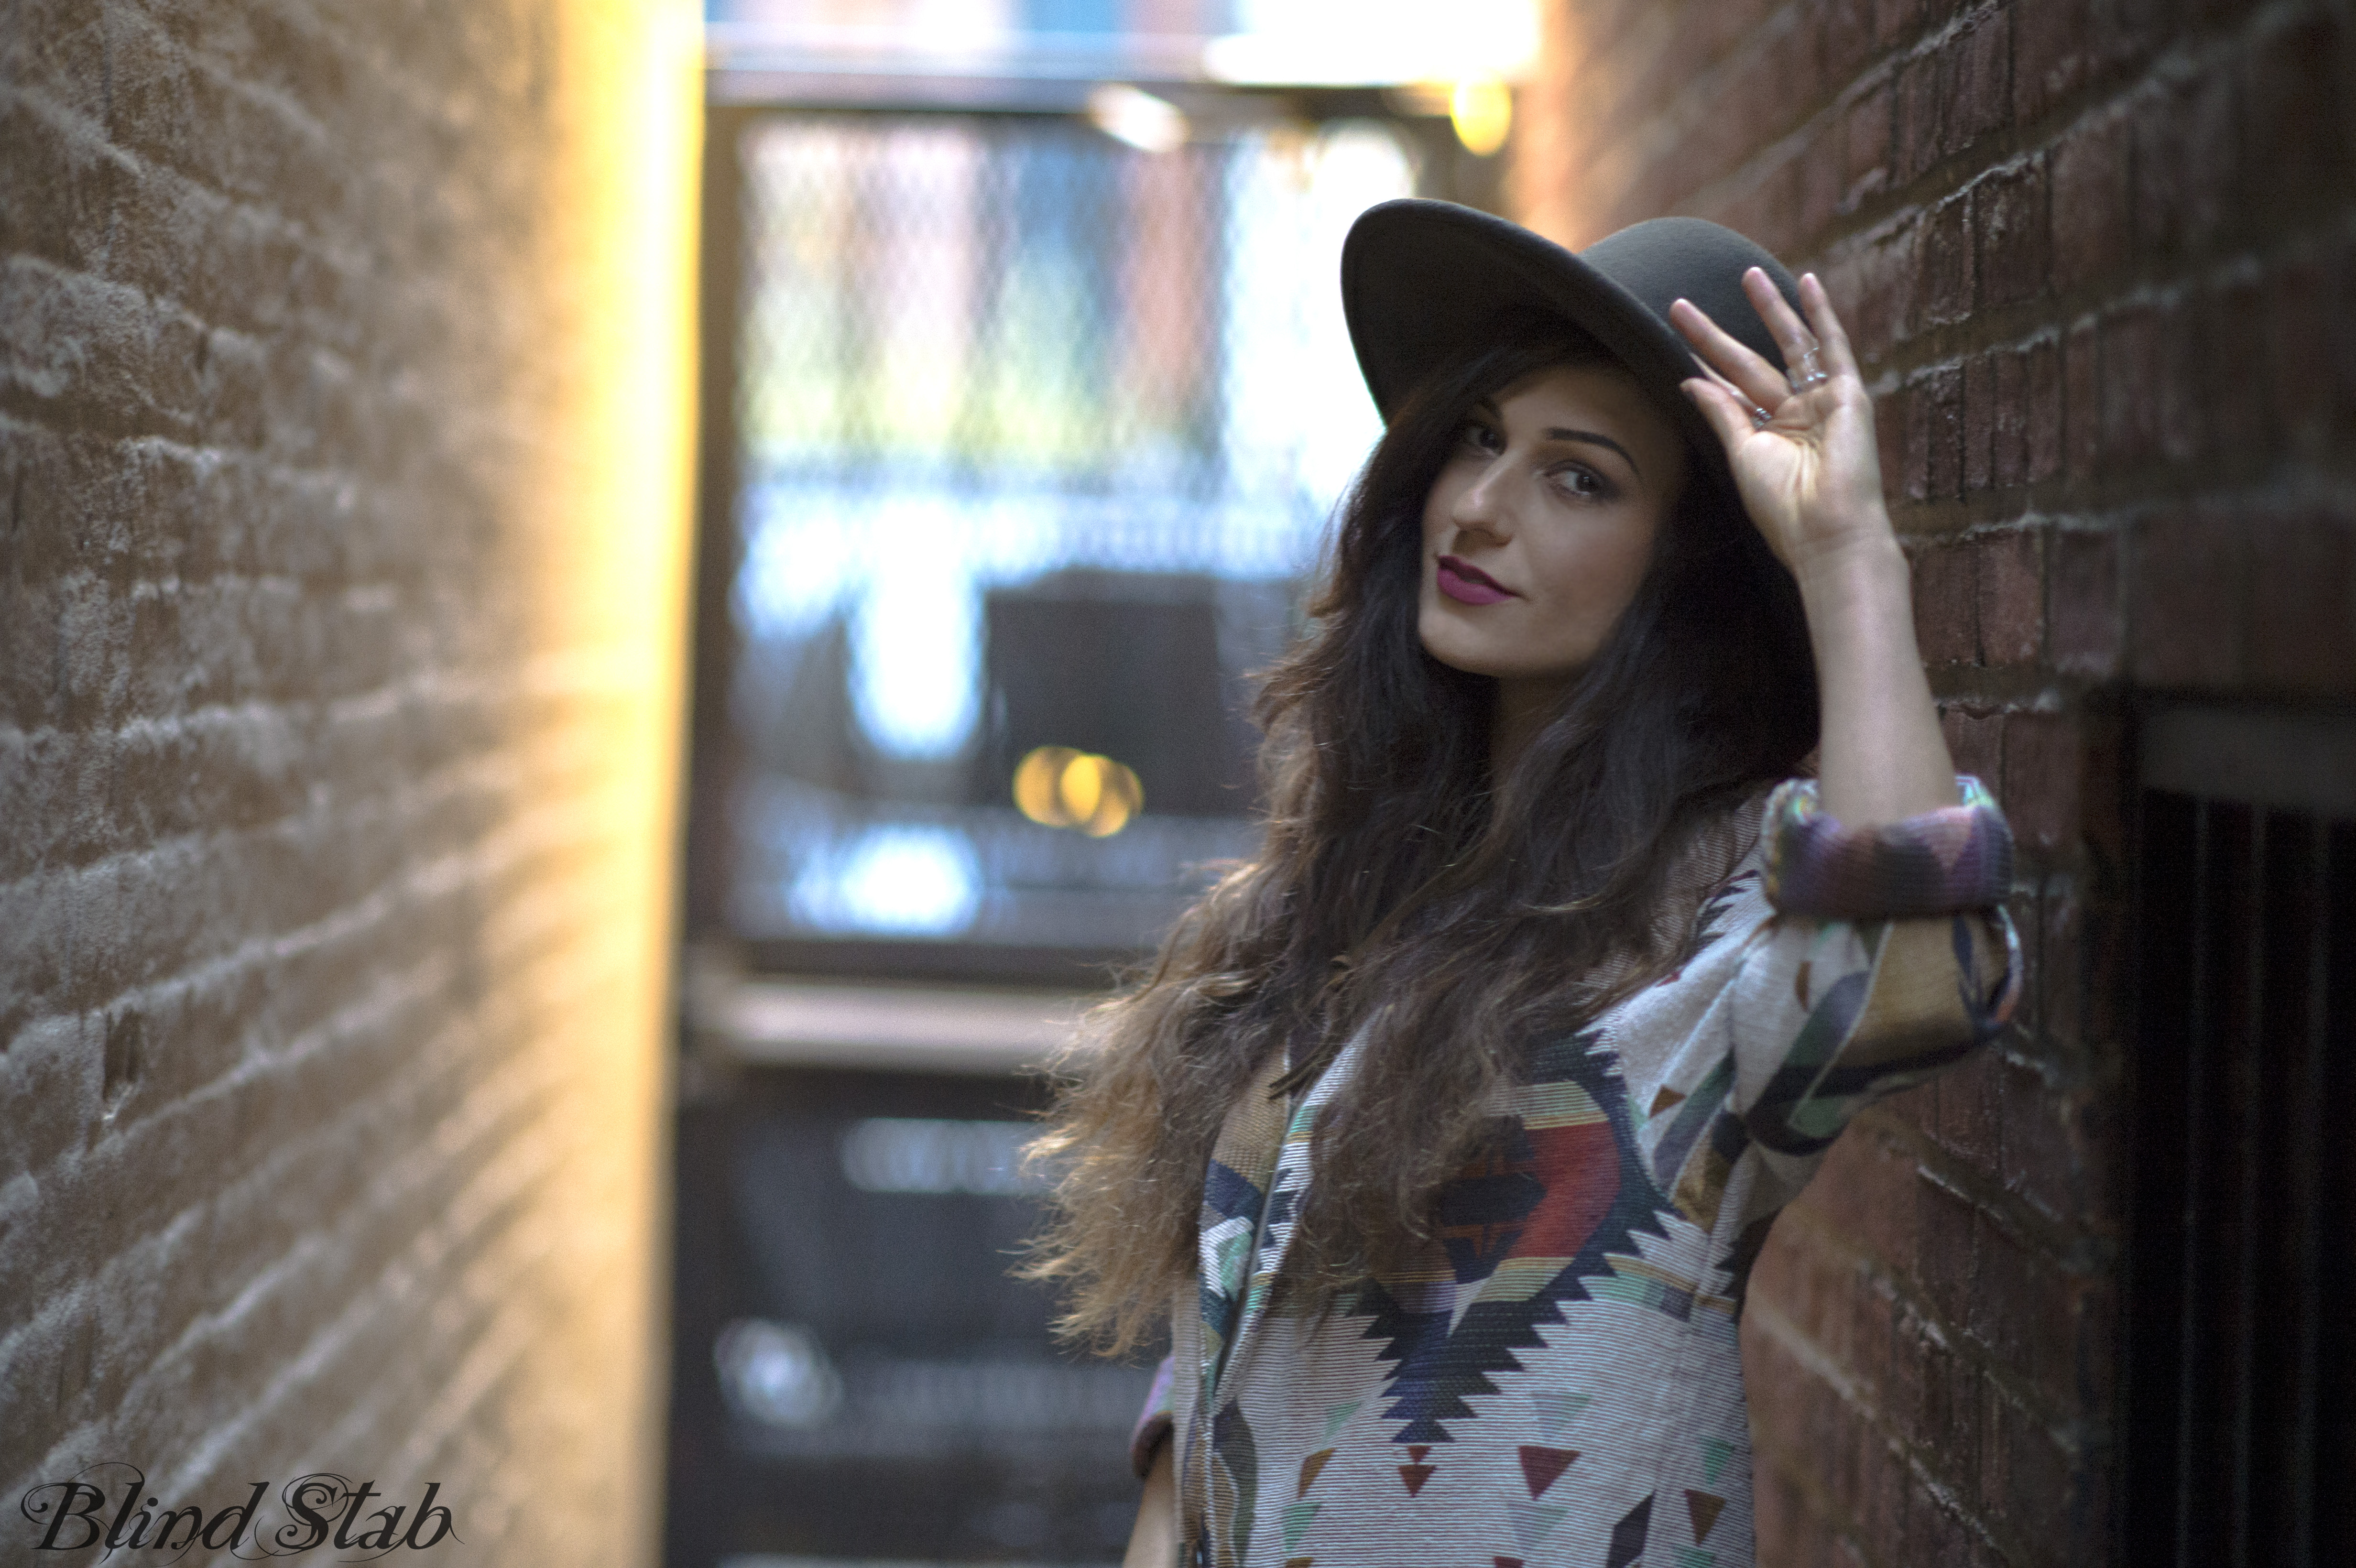 Wide-Brim-Hat-Girl-Alley